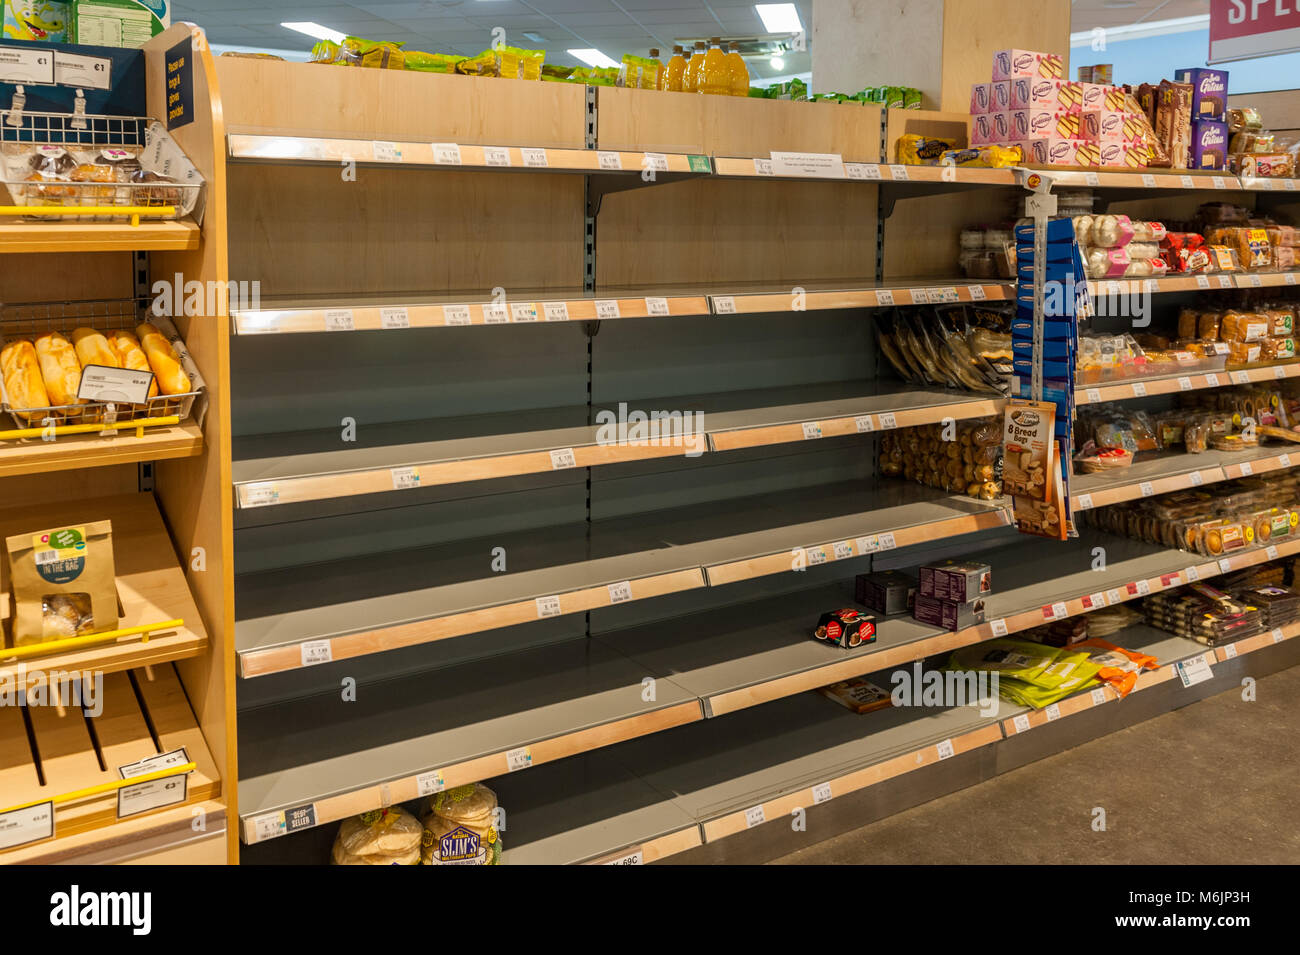 Empty bread shelves in Centra supermarket, Schull, County Cork, Ireland during Storm Emma. - Stock Image